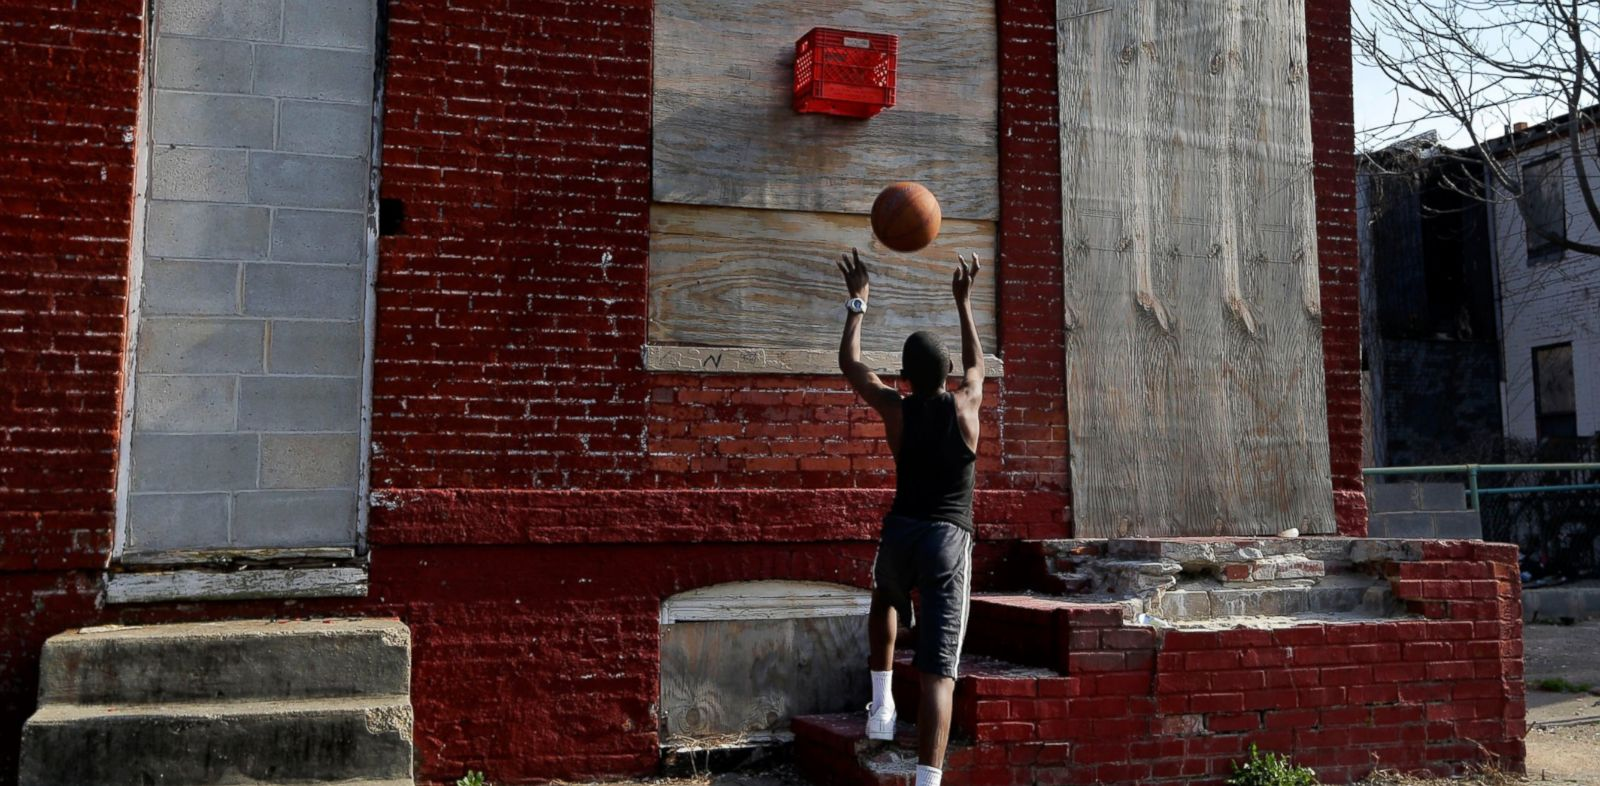 PHOTO: A boy shoots a basketball into a makeshift basket made from a milk crate and attached to a vacant row house in Baltimore, April 8, 2013.